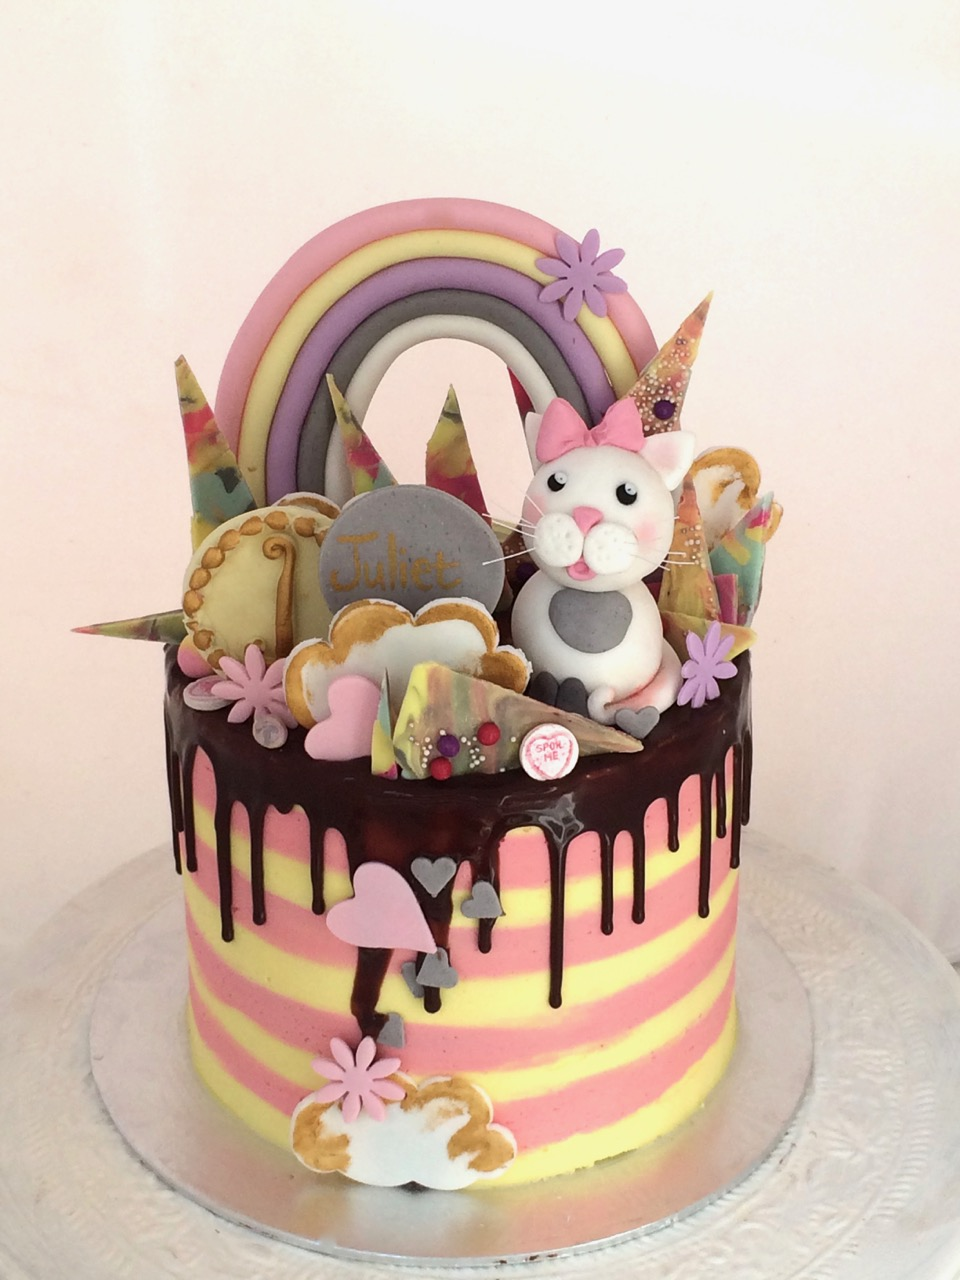 Enjoyable Rozannes Cakes Cat Crazy Cake For A First Birthday Funny Birthday Cards Online Hetedamsfinfo